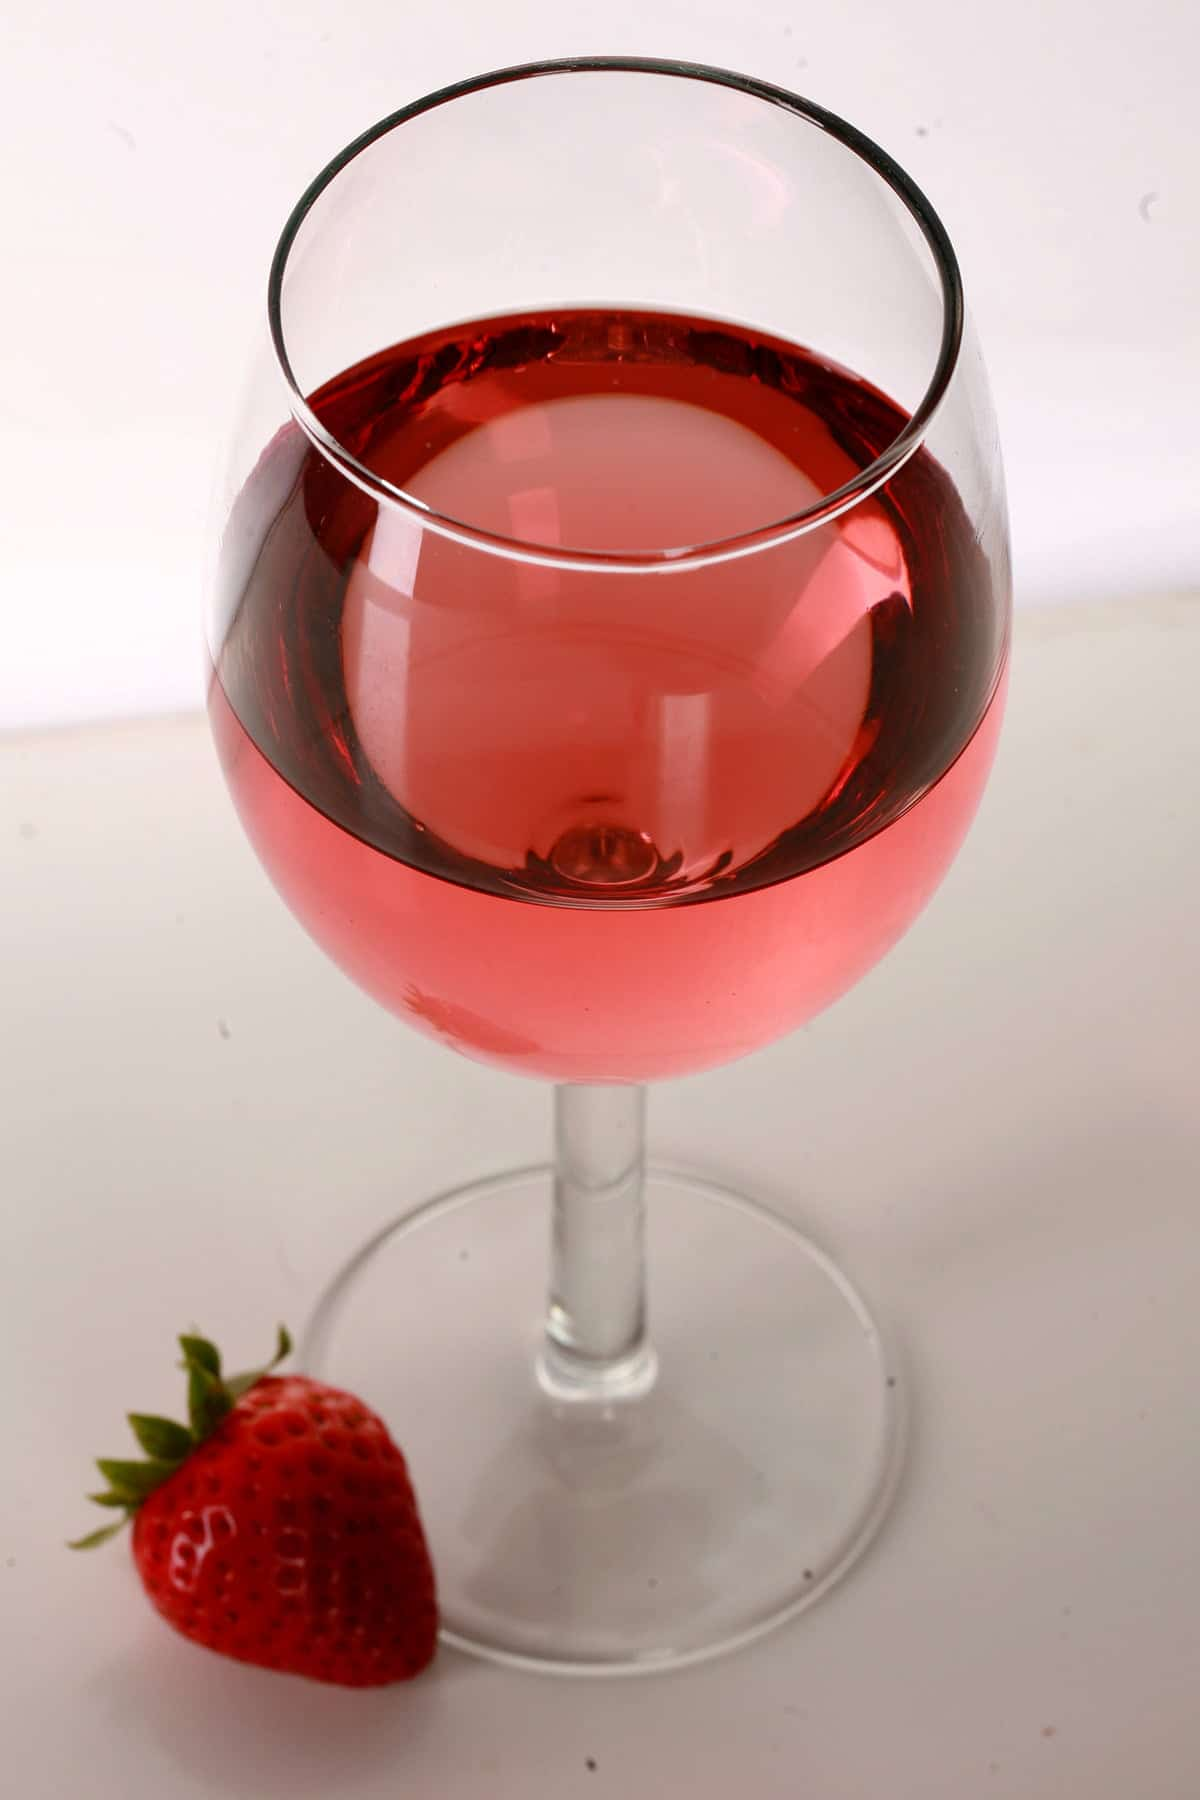 A glass of pale red strawberry wine is pictured, with a single strawberry at the base of the glass.